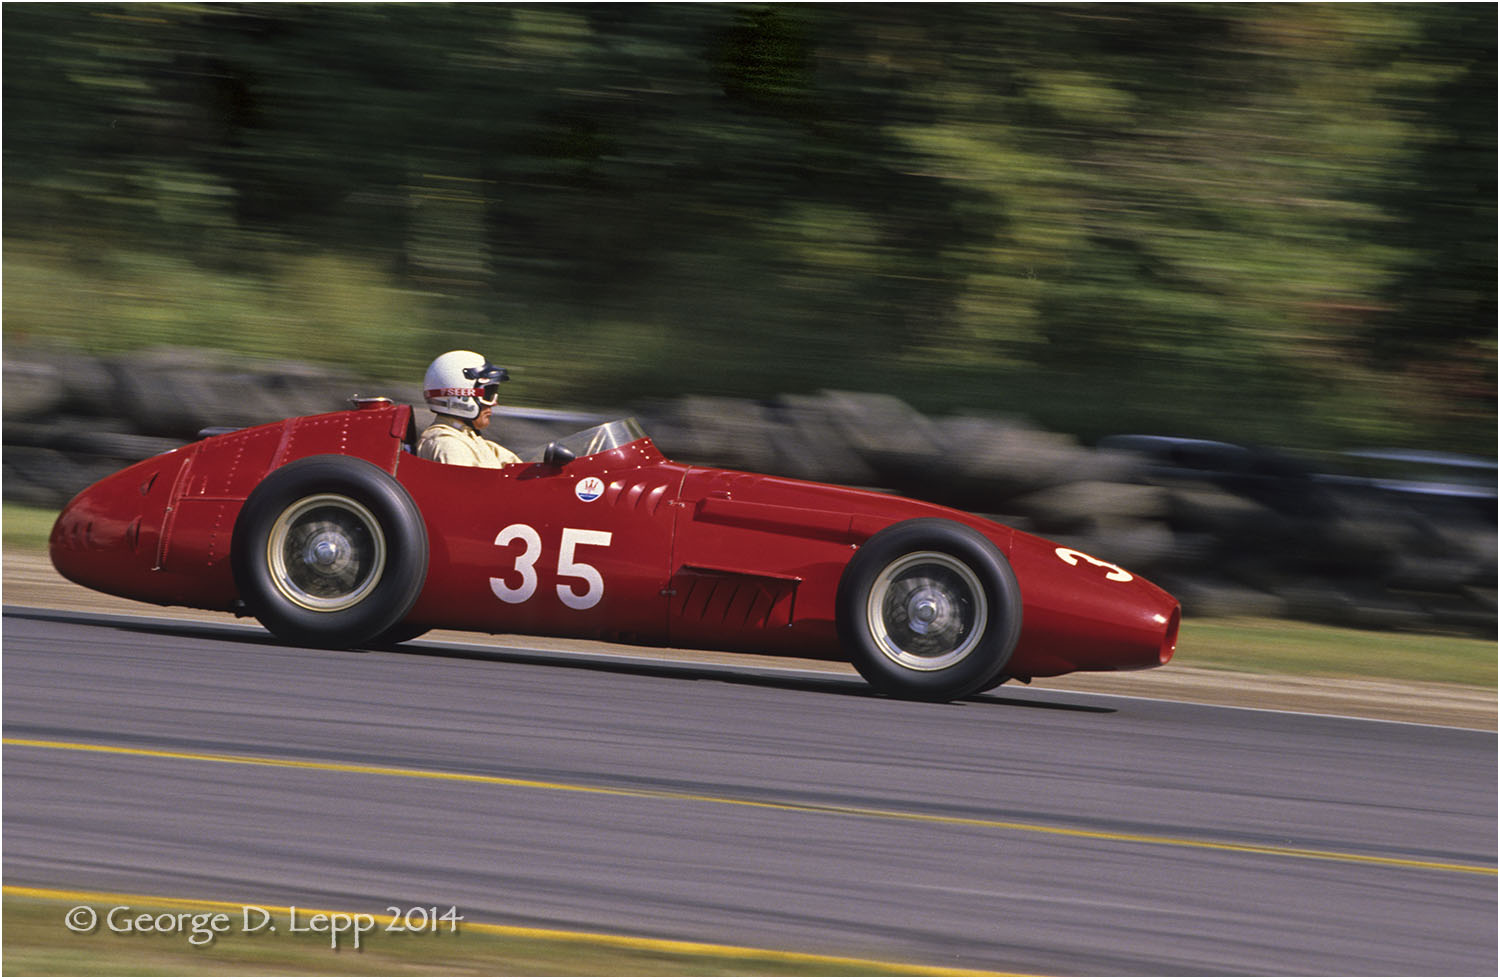 Sterling Moss in a Maserati F1, Vintage Racing, Limerock, CT. © George D. Lepp 2014  T-RA-VI-0005